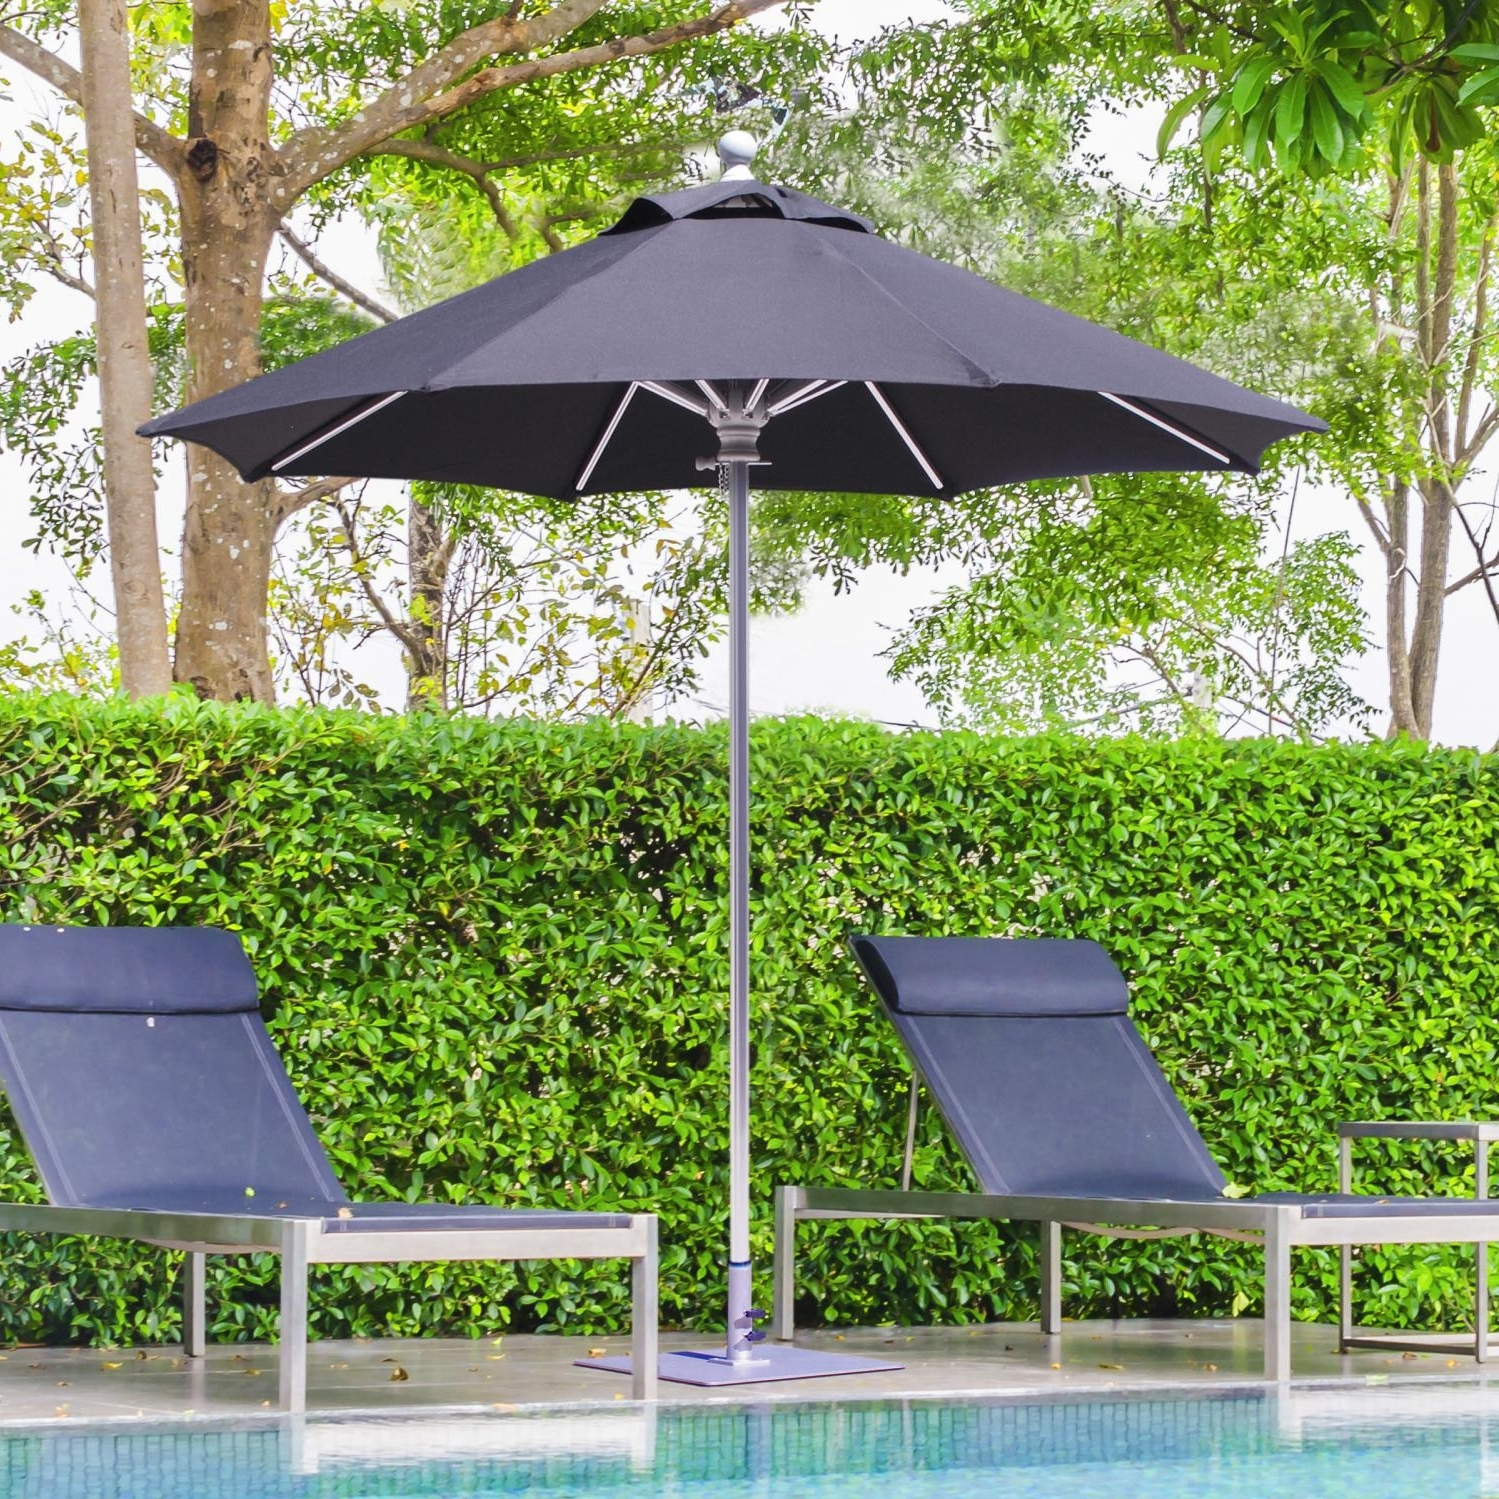 Sunbrella Outdoor Patio Umbrellas With Well Known Galtech Sr Series 7 1/2 Ft Aluminum Patio Umbrella With Manual Lift (View 16 of 20)